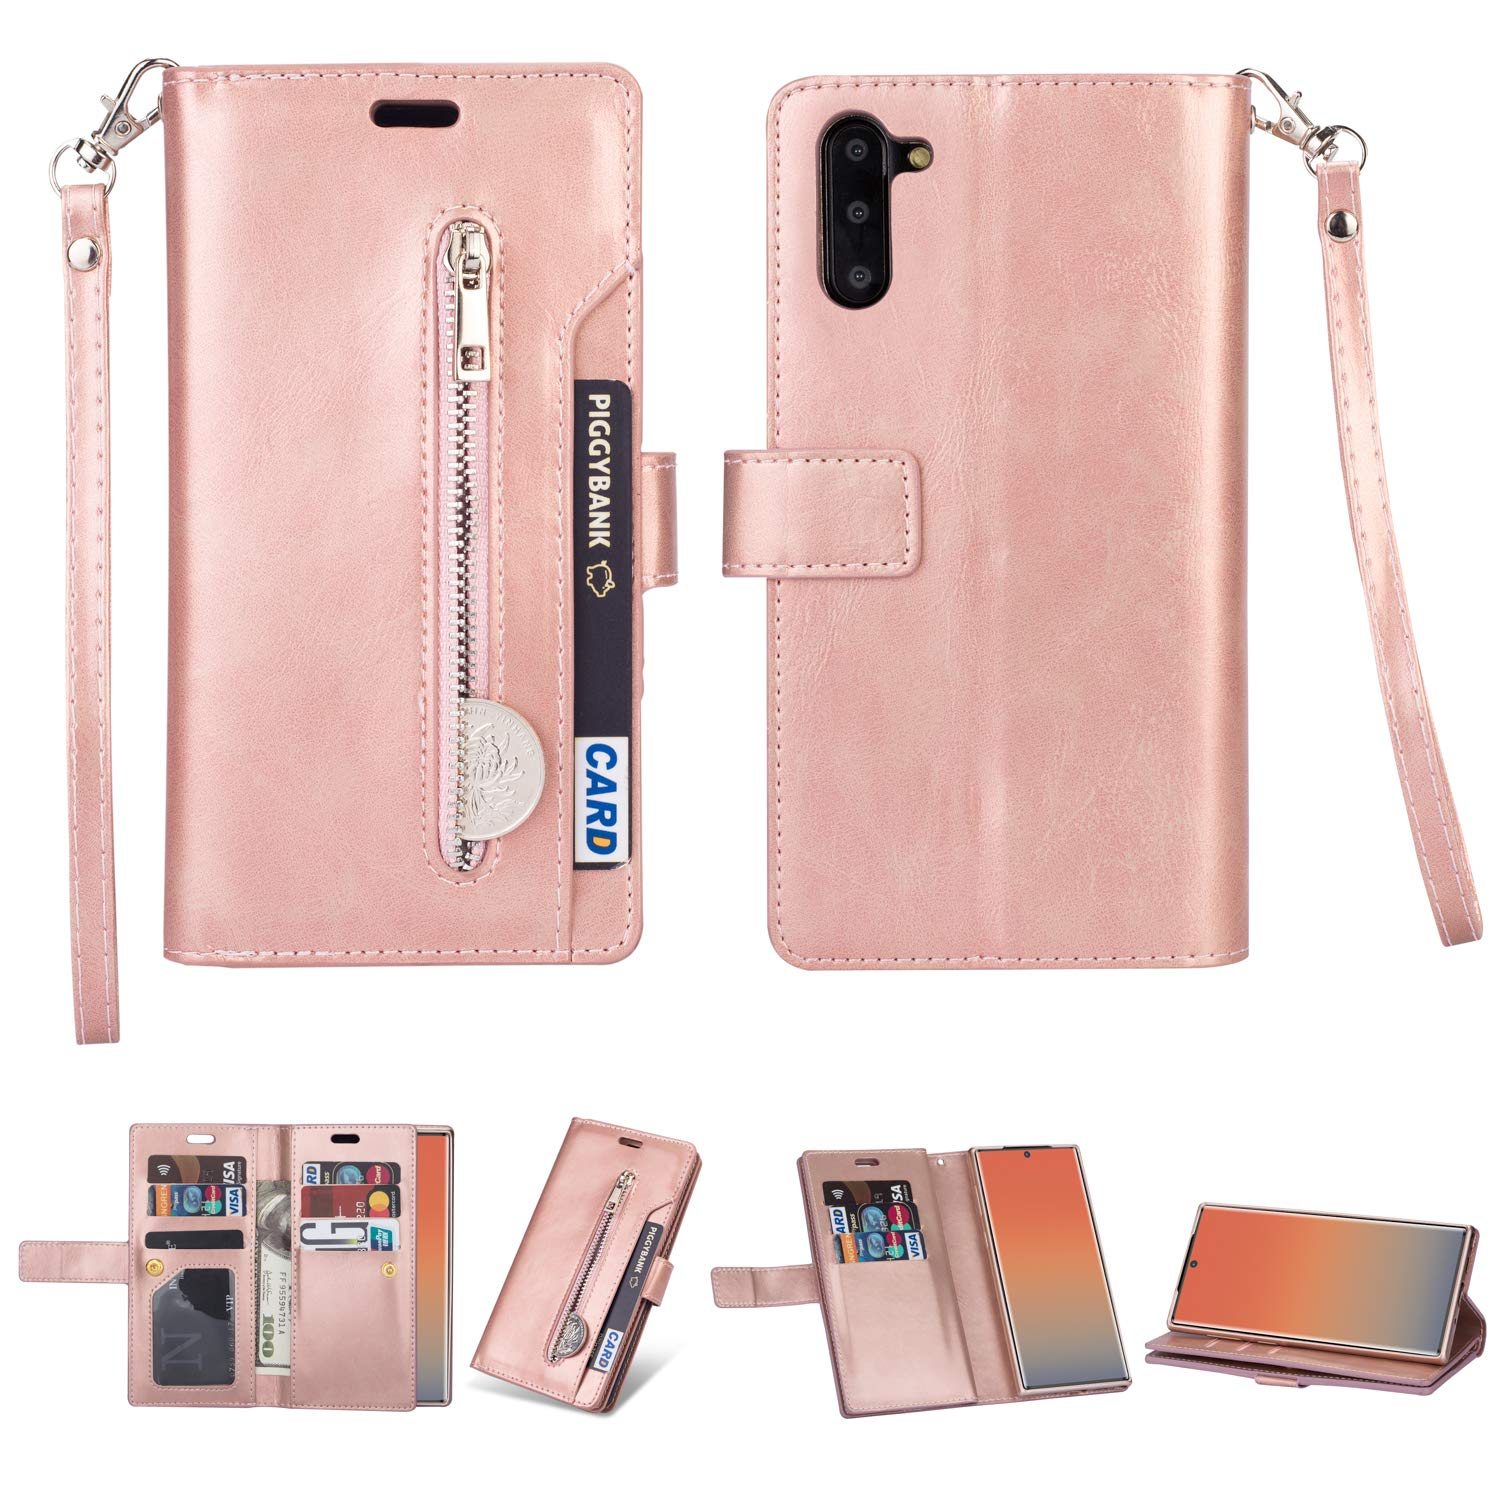 DAMONDY for Samsung Note 10 Case,Zipper Stand Wallet Purse 9 Card Slot ID Holders Design Flip Cover Pocket Purse Leather Magnetic Protective for Samsung Galaxy Note 10-Rose Gold by DAMONDY